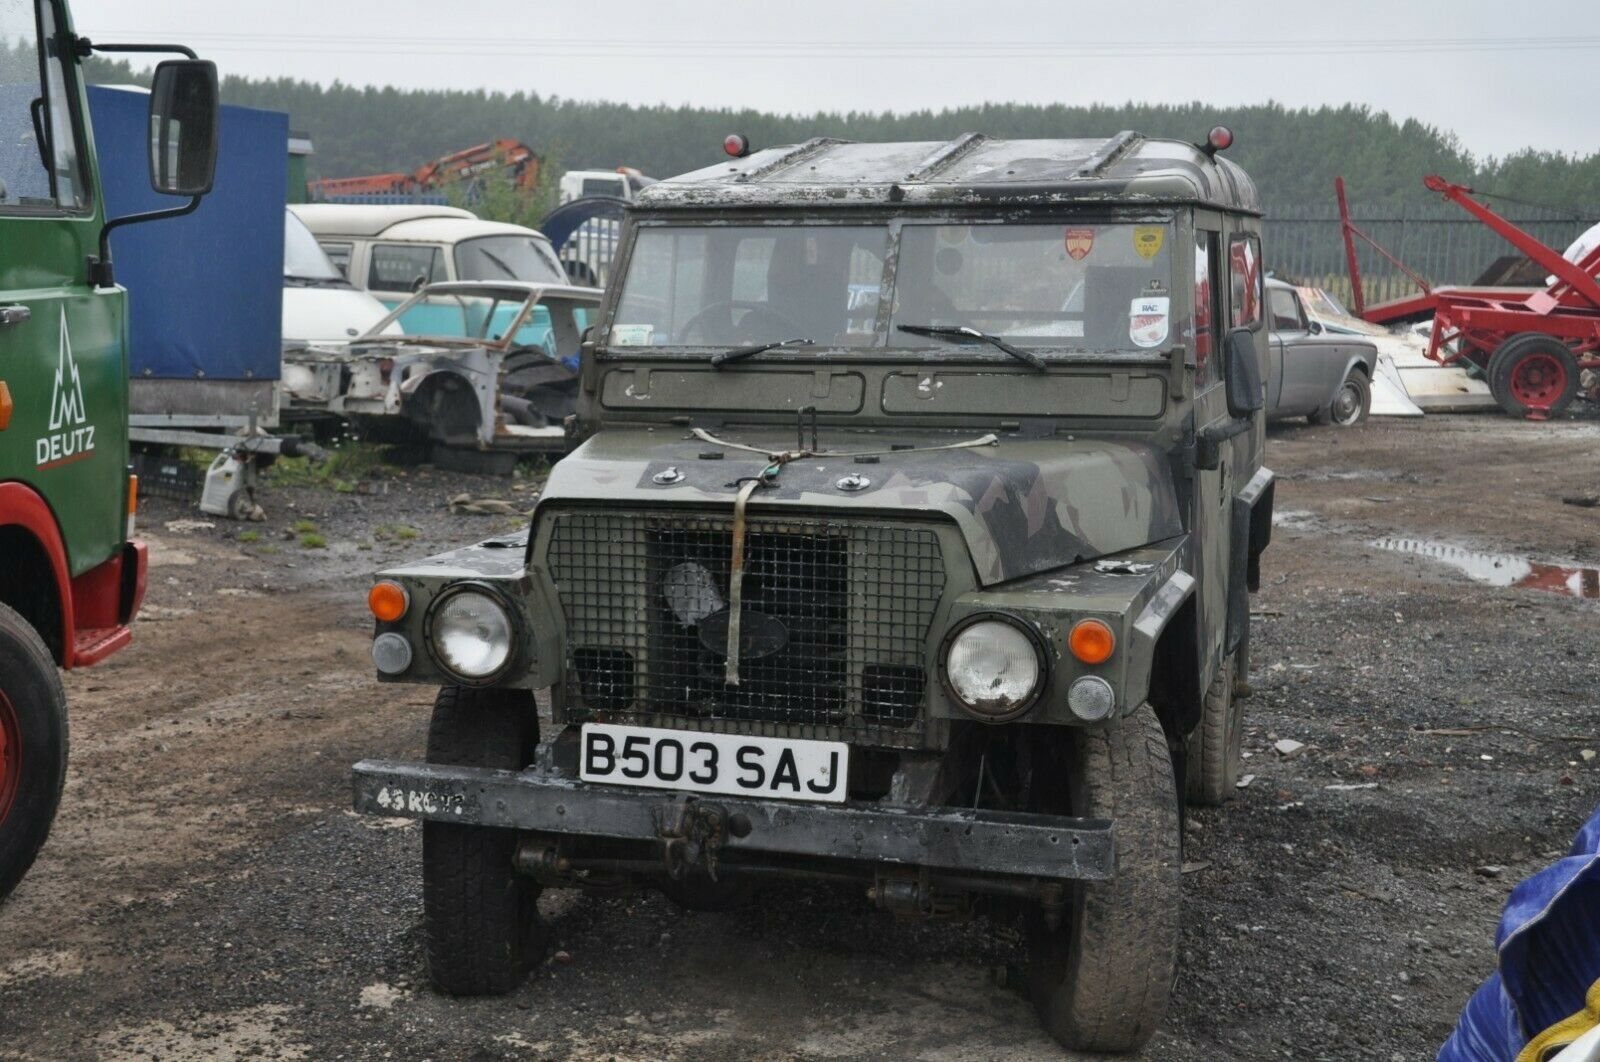 1994 LAND ROVER LIGHTWEIGHT 4X4 UTILITY DEFENDER 90 SERIES 3 SOLD (picture 1 of 6)